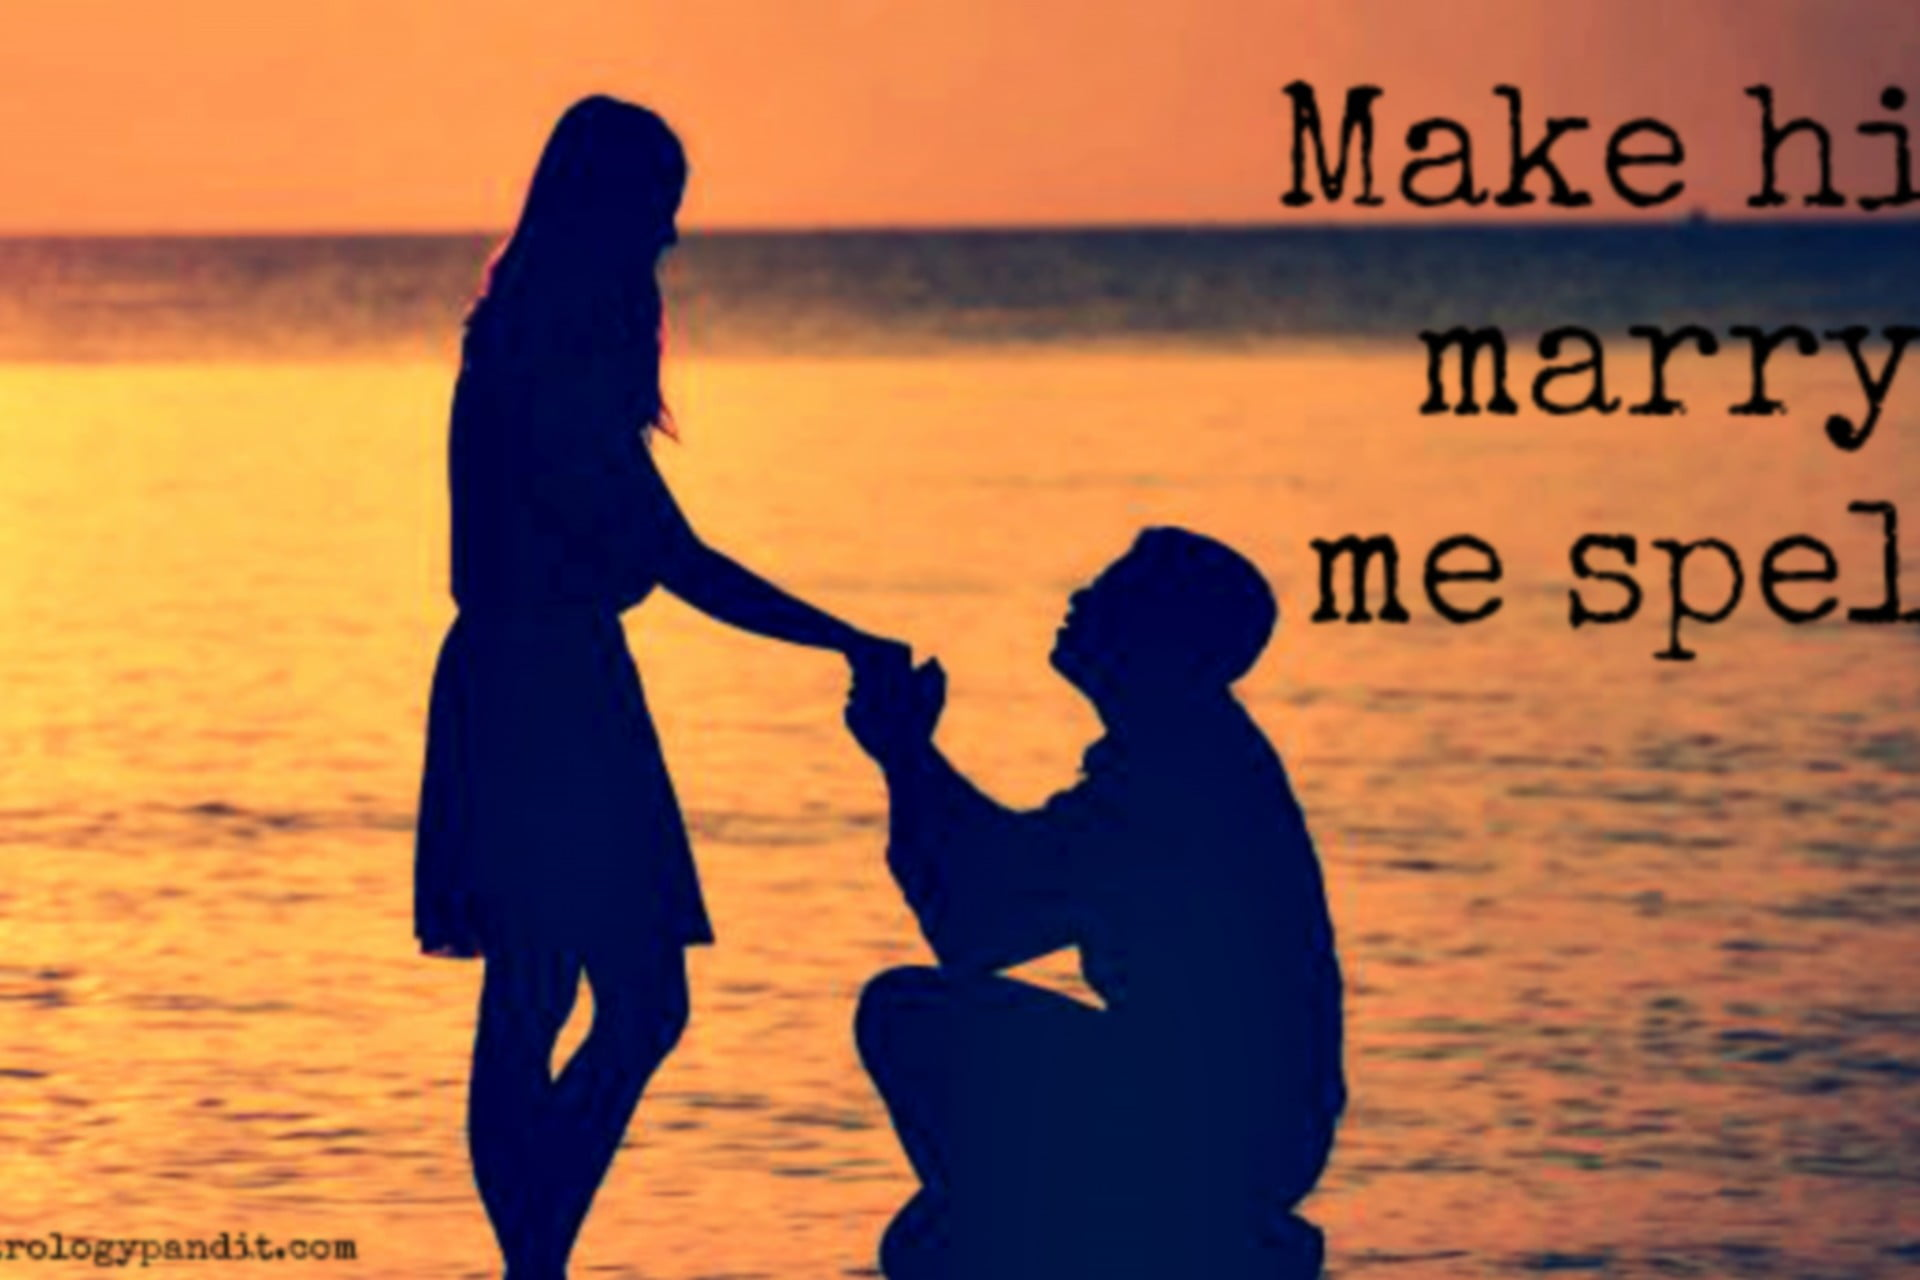 Powerful Marry Me Spells | Let Him Do It quick | Love Spells Wicca